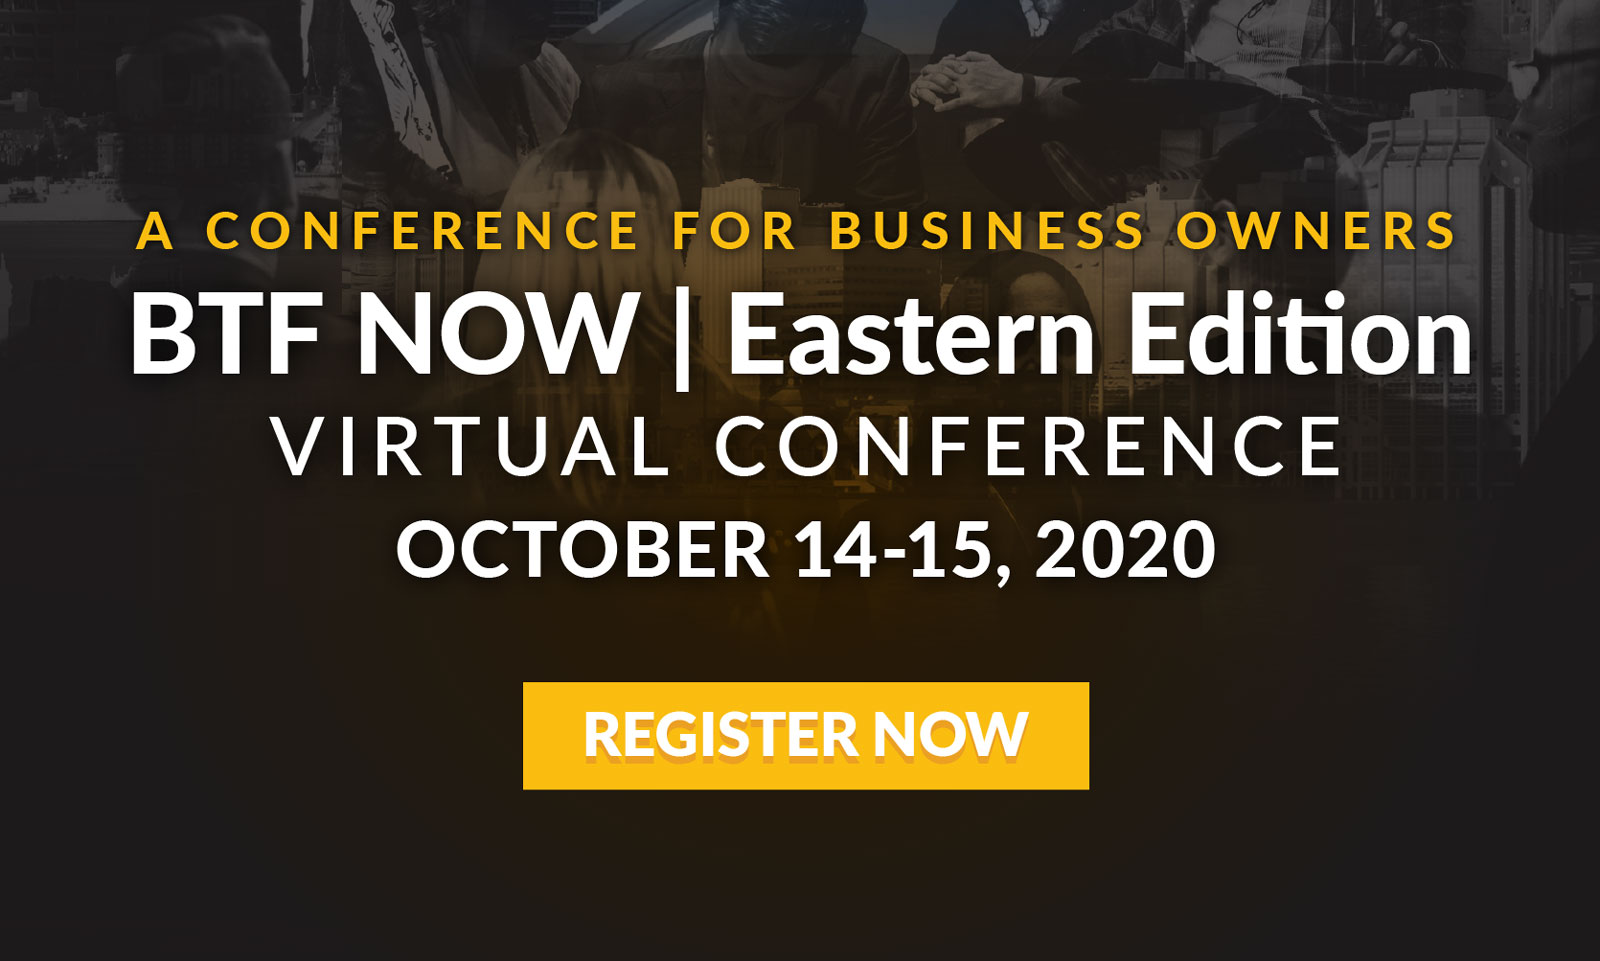 BTF NOW | Eastern Edition / Virtual Conference - Oct 14-15